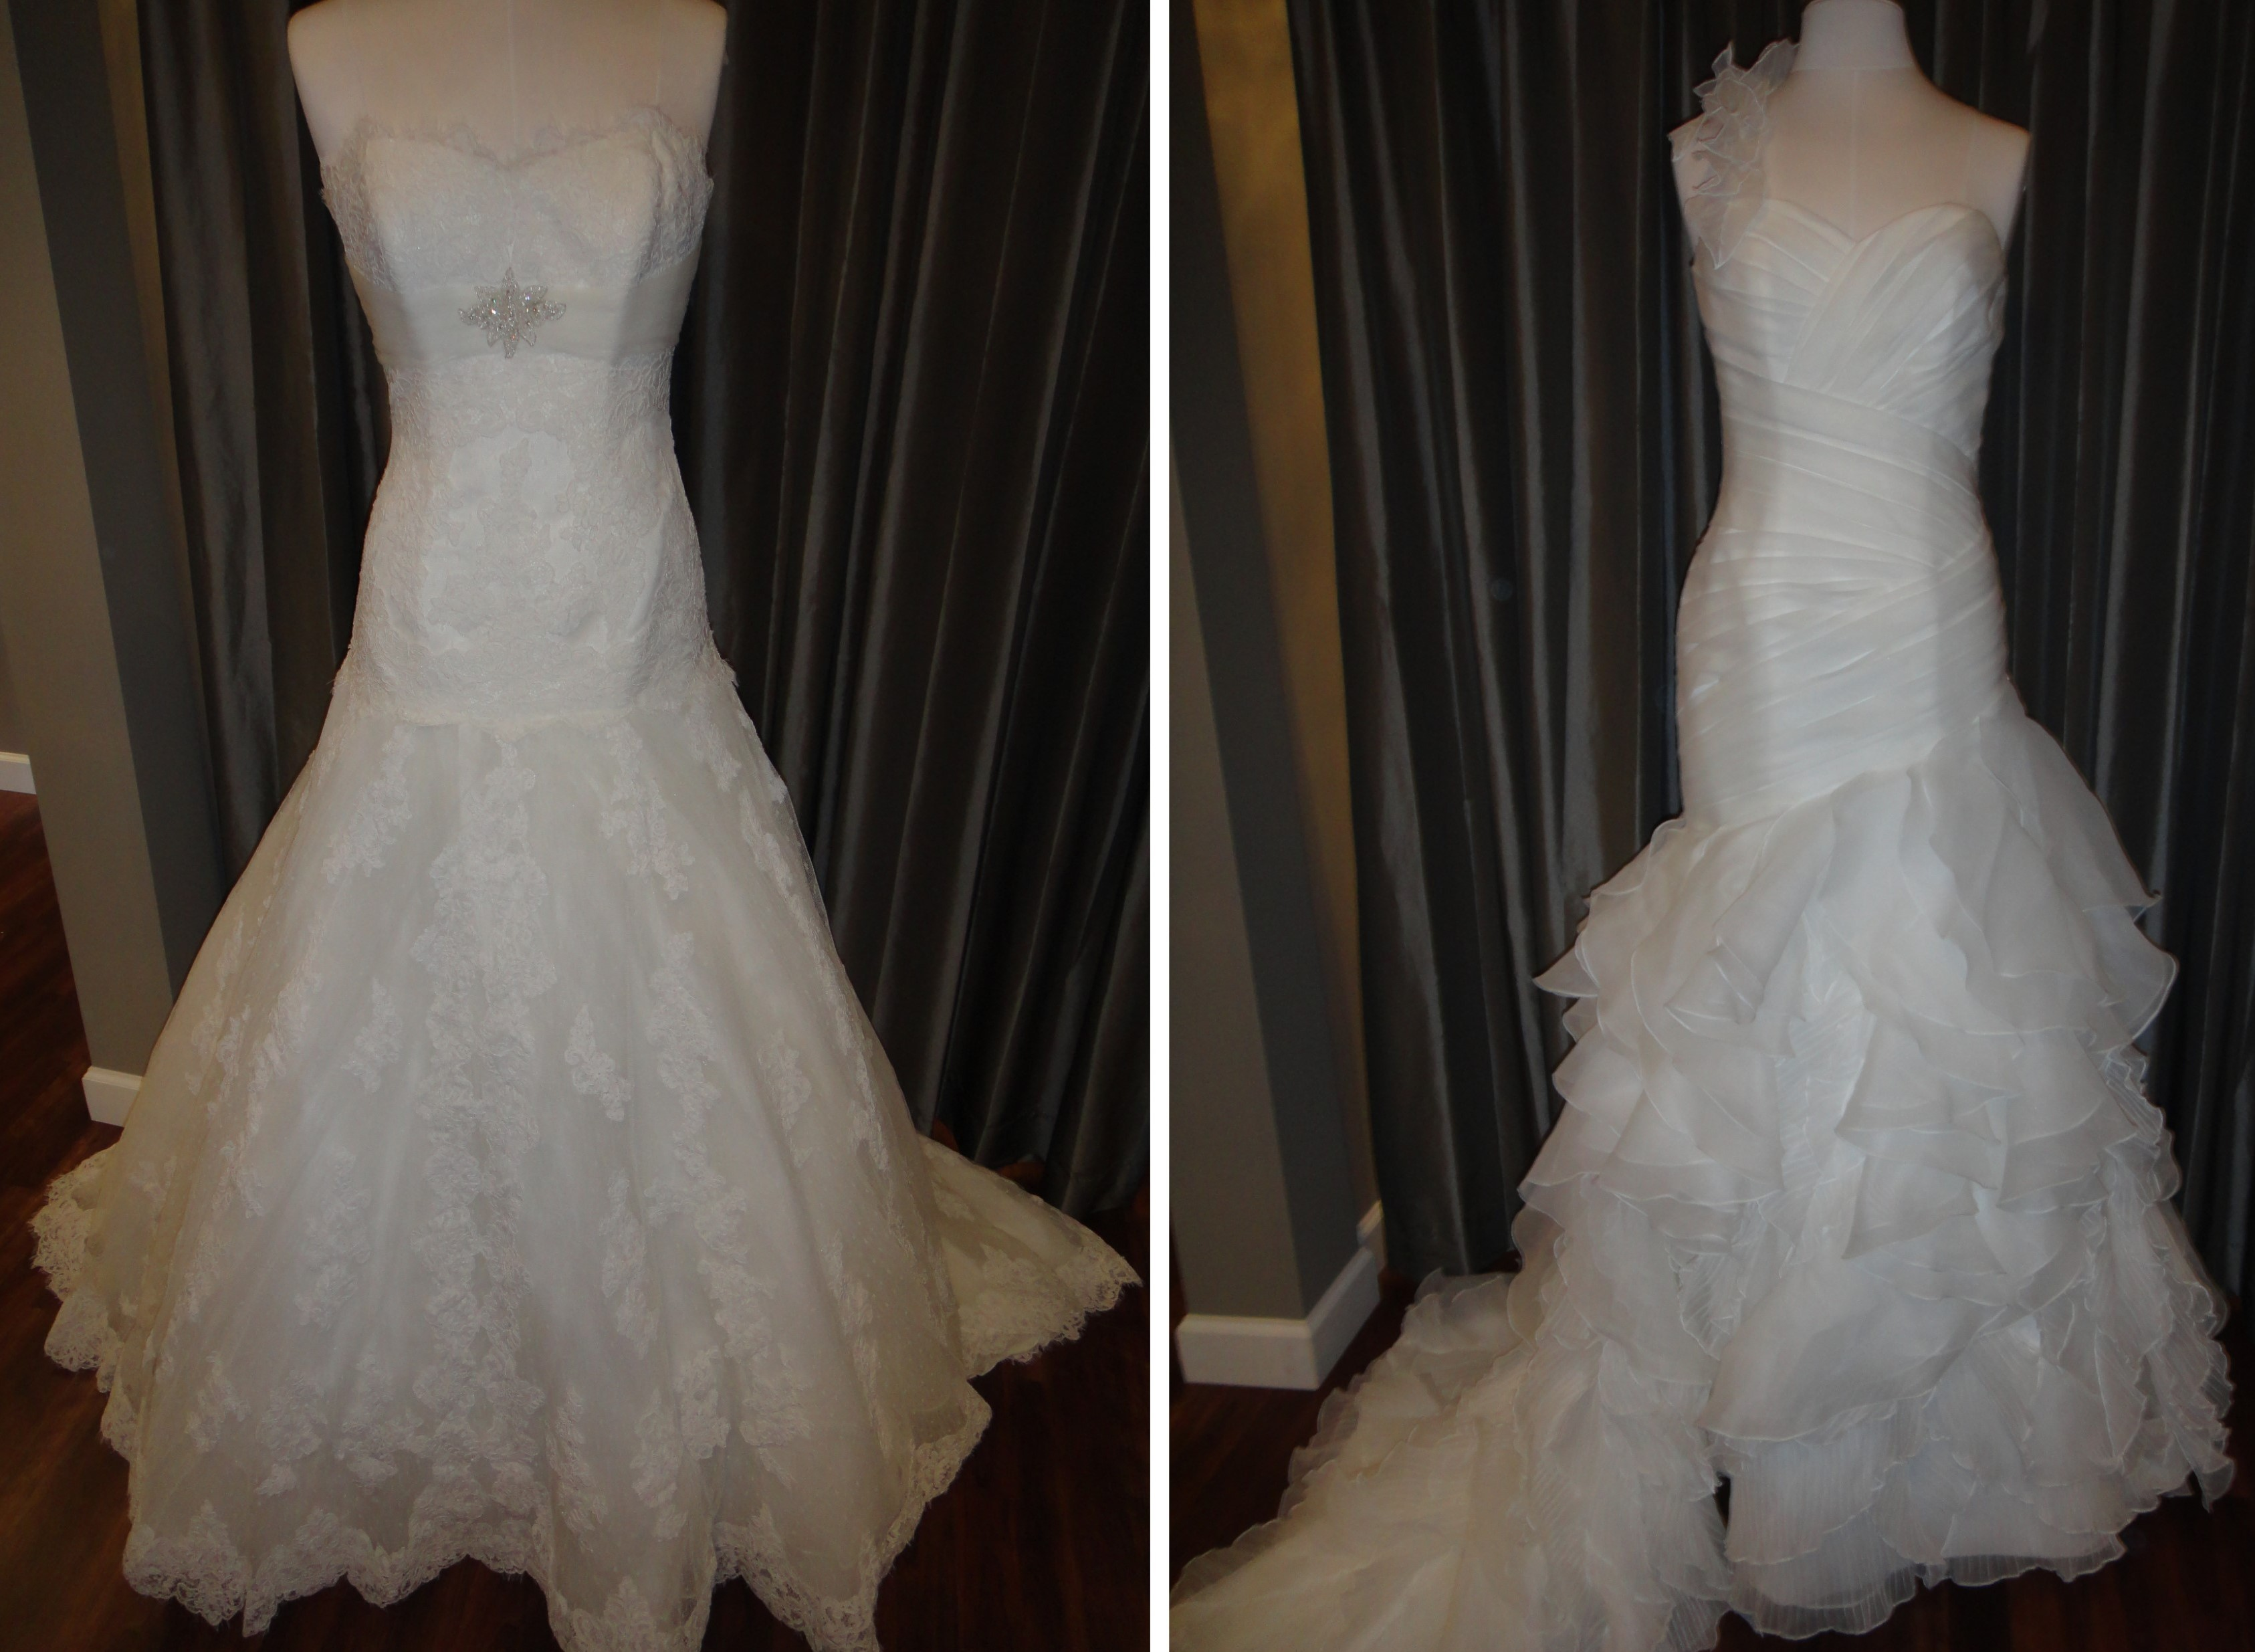 Exquisite designs by La Sposa now available at Ready or Knot